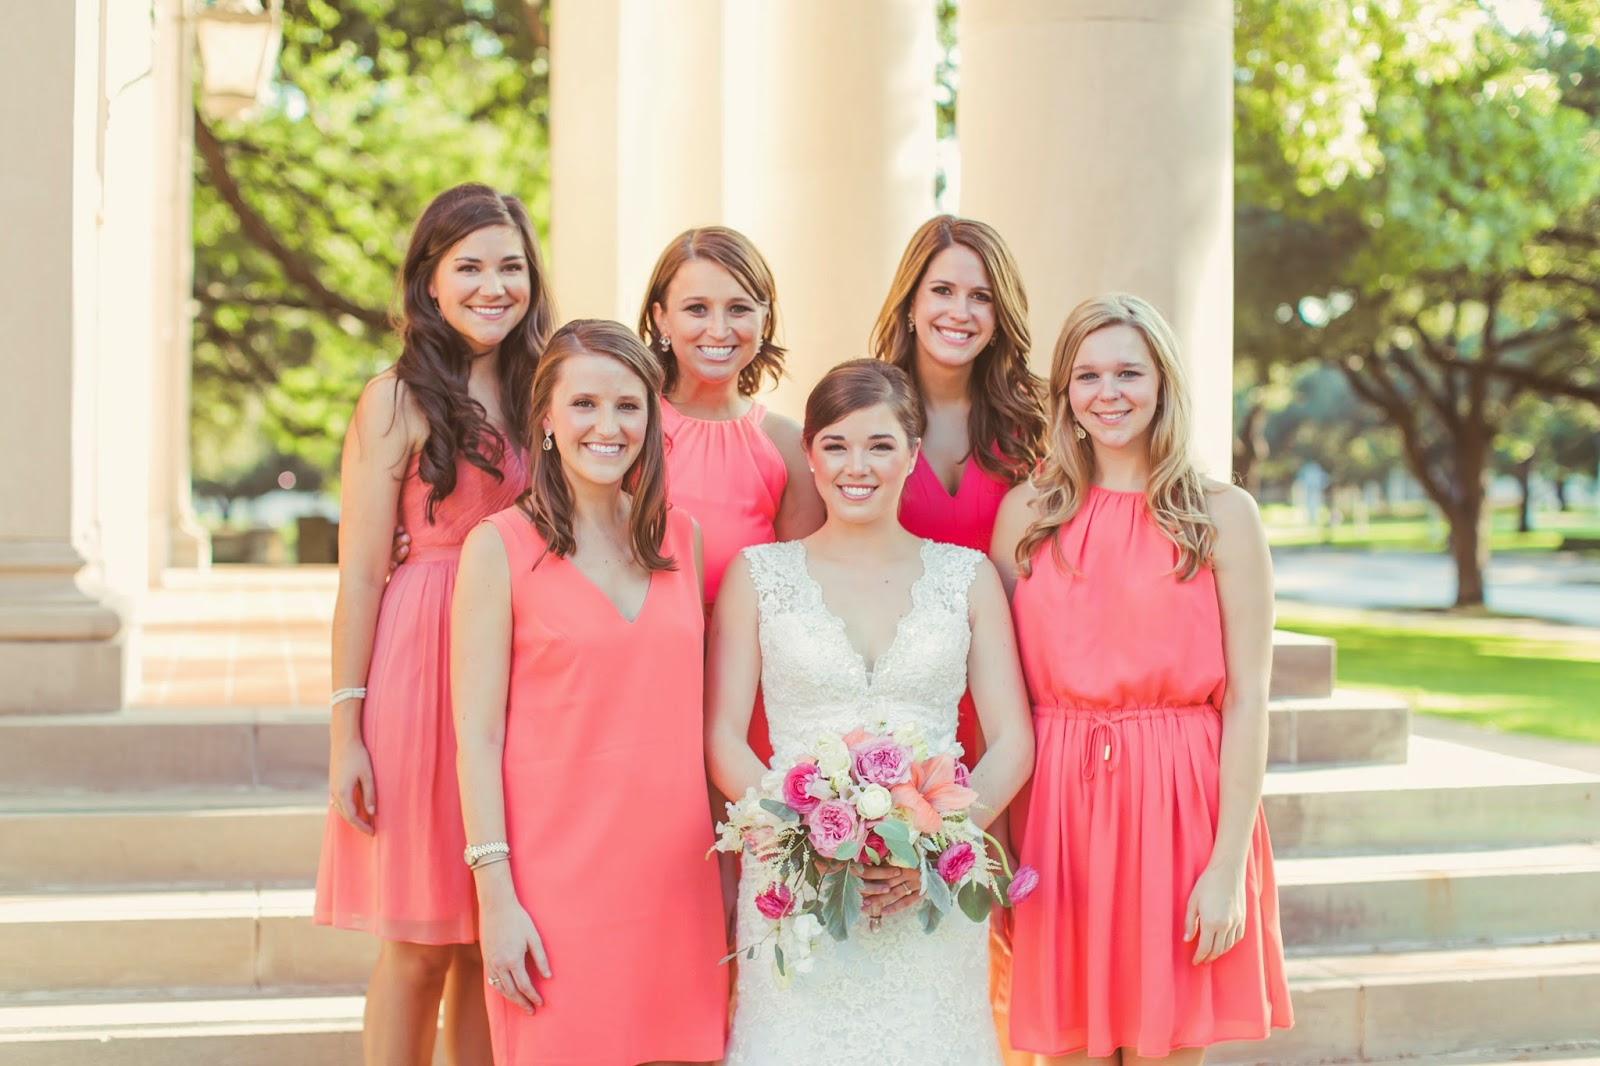 The Blooming Bride, DFW, Fort Worth, Texas, Wedding Flowers, Bouquet, Brides The Blooming Bride, DFW, Fort Worth, Texas, Wedding Flowers, Bouquet, Bridesmaids, Coral, Pink